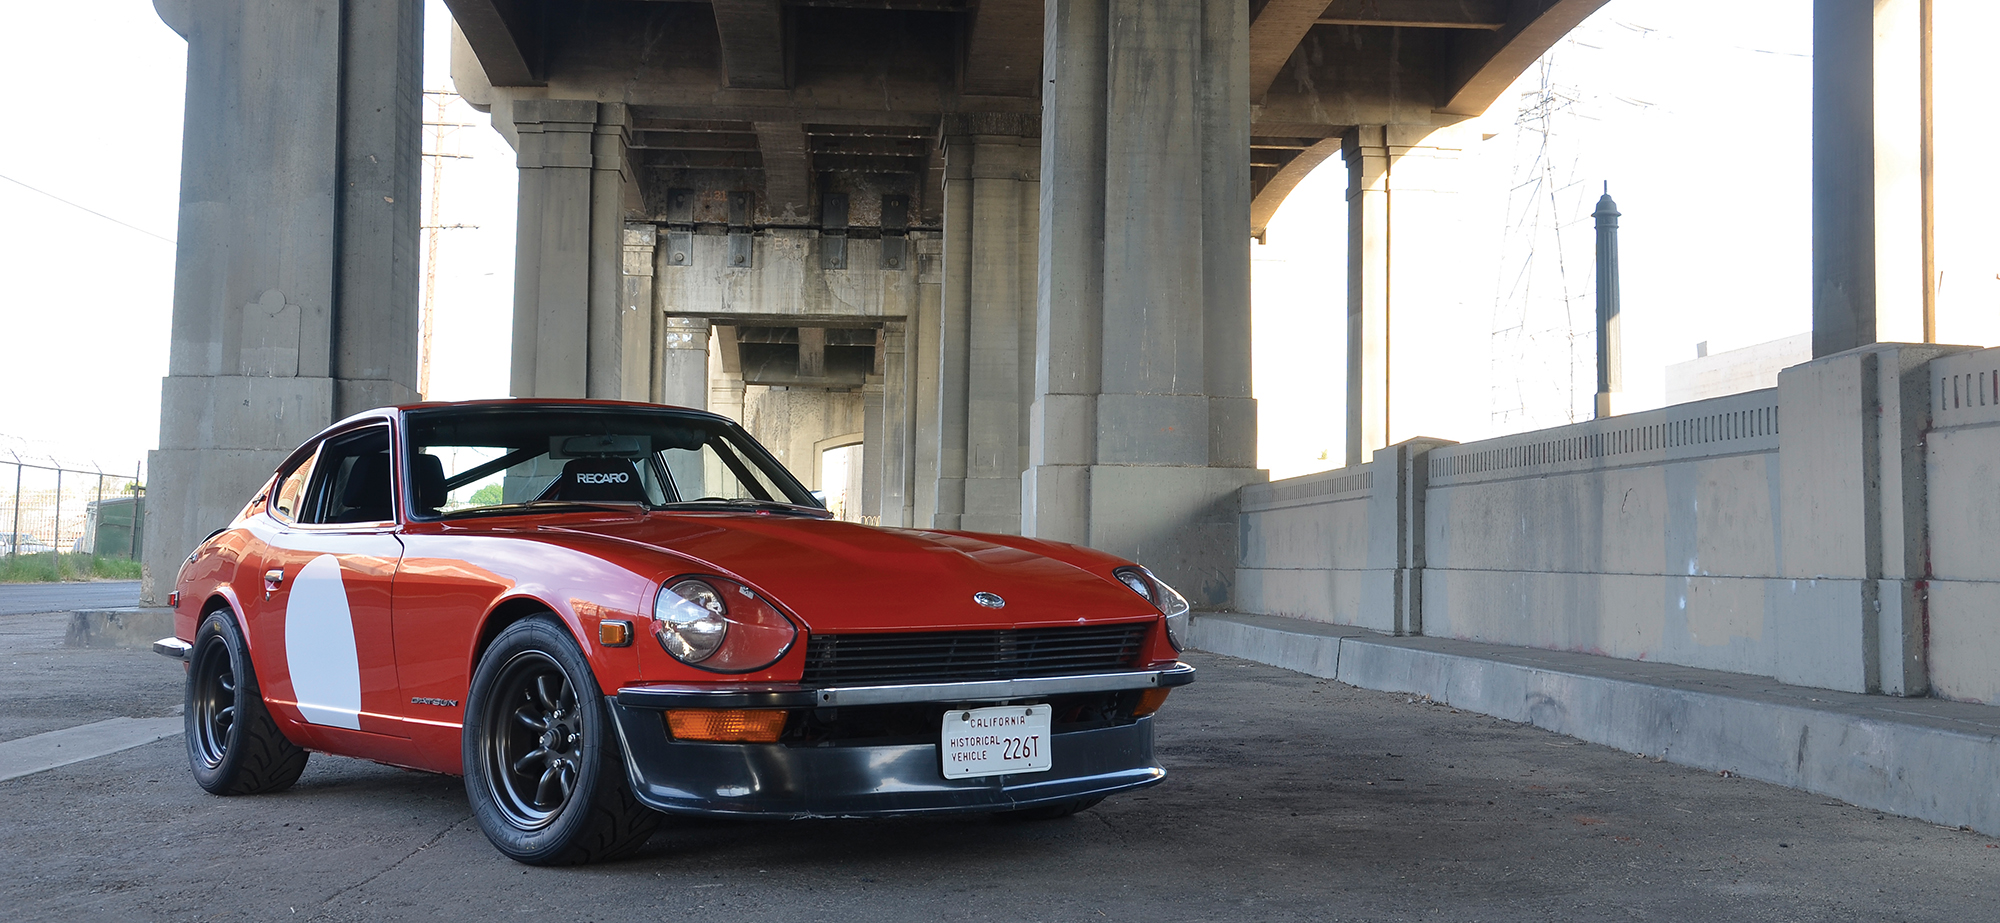 Z-For-All: A Modified Datsun With an Old-School Look | Articles ...